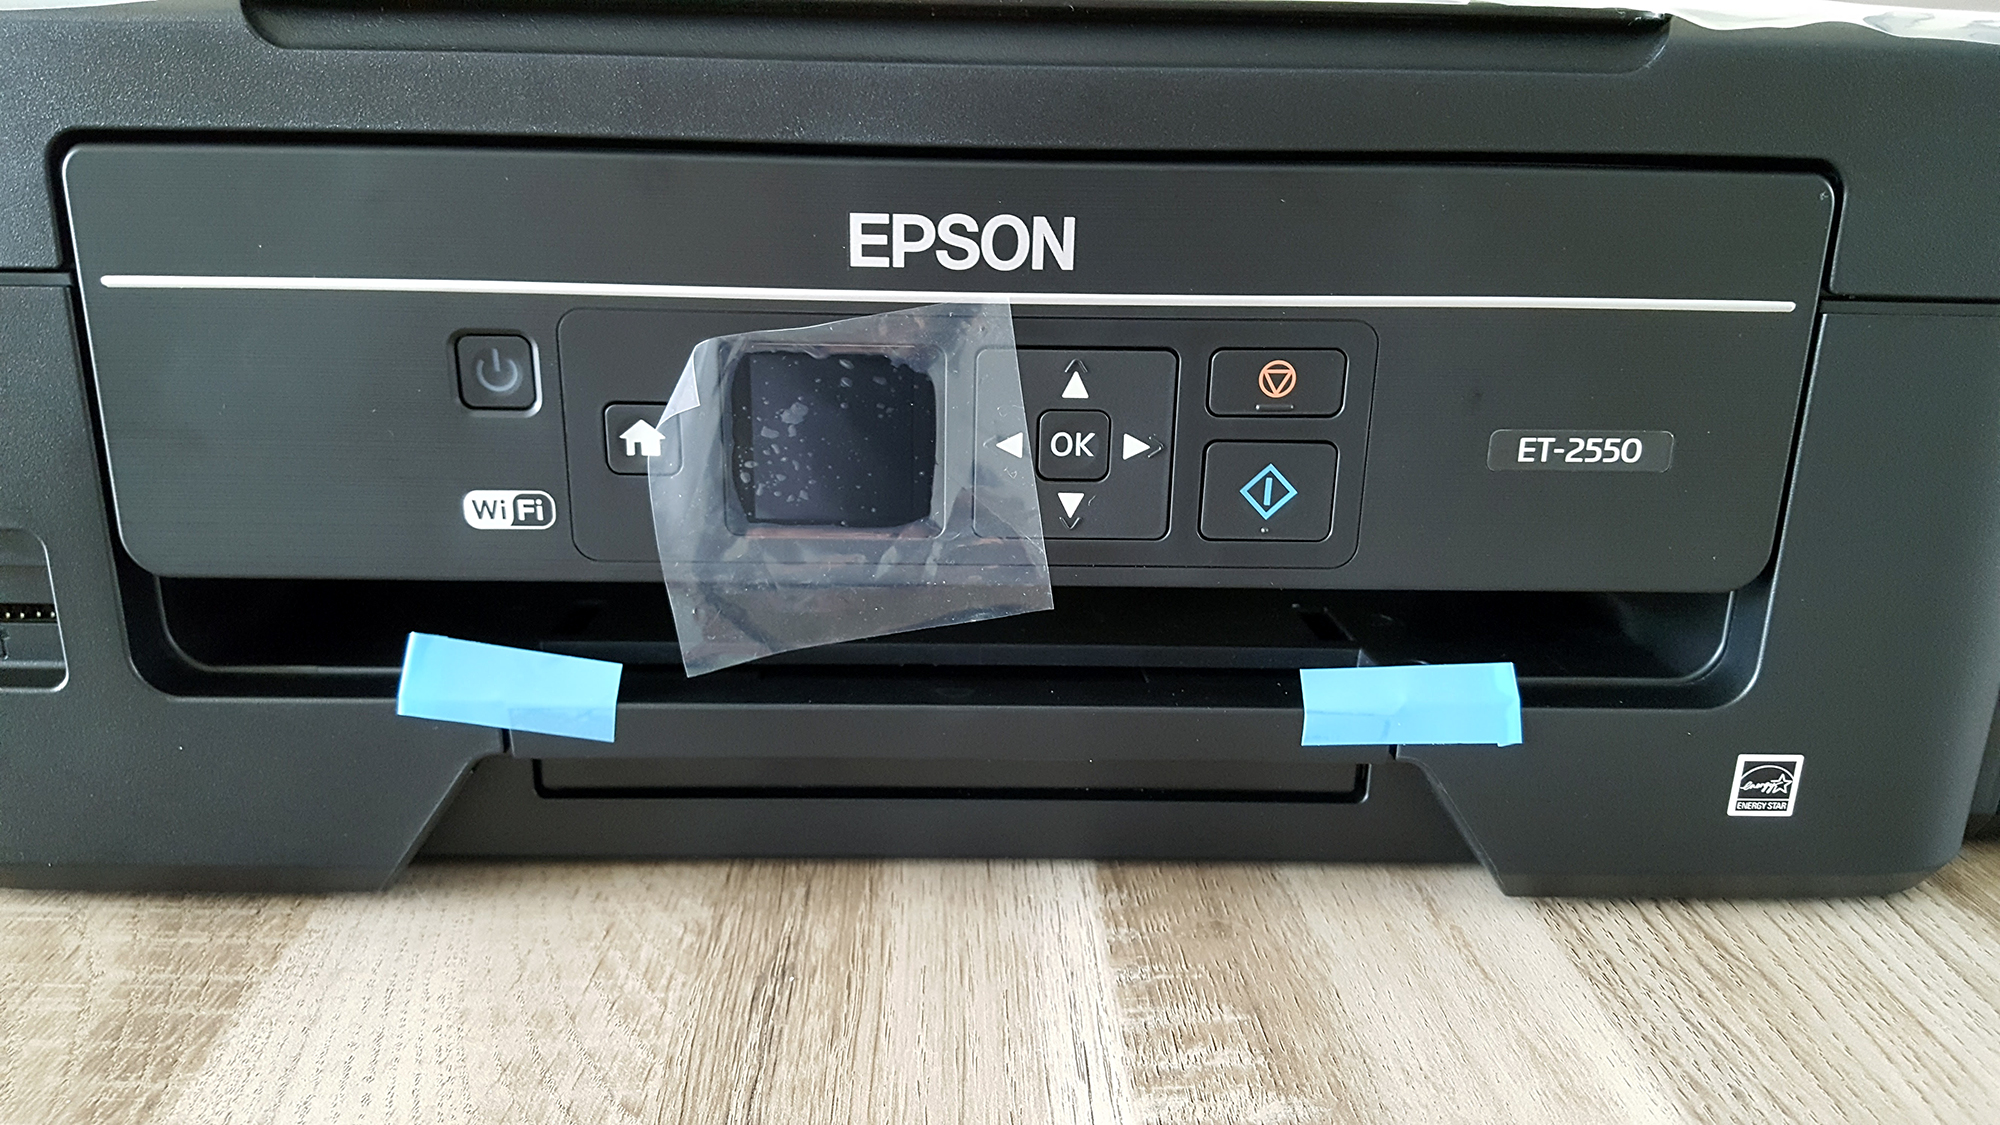 epson front